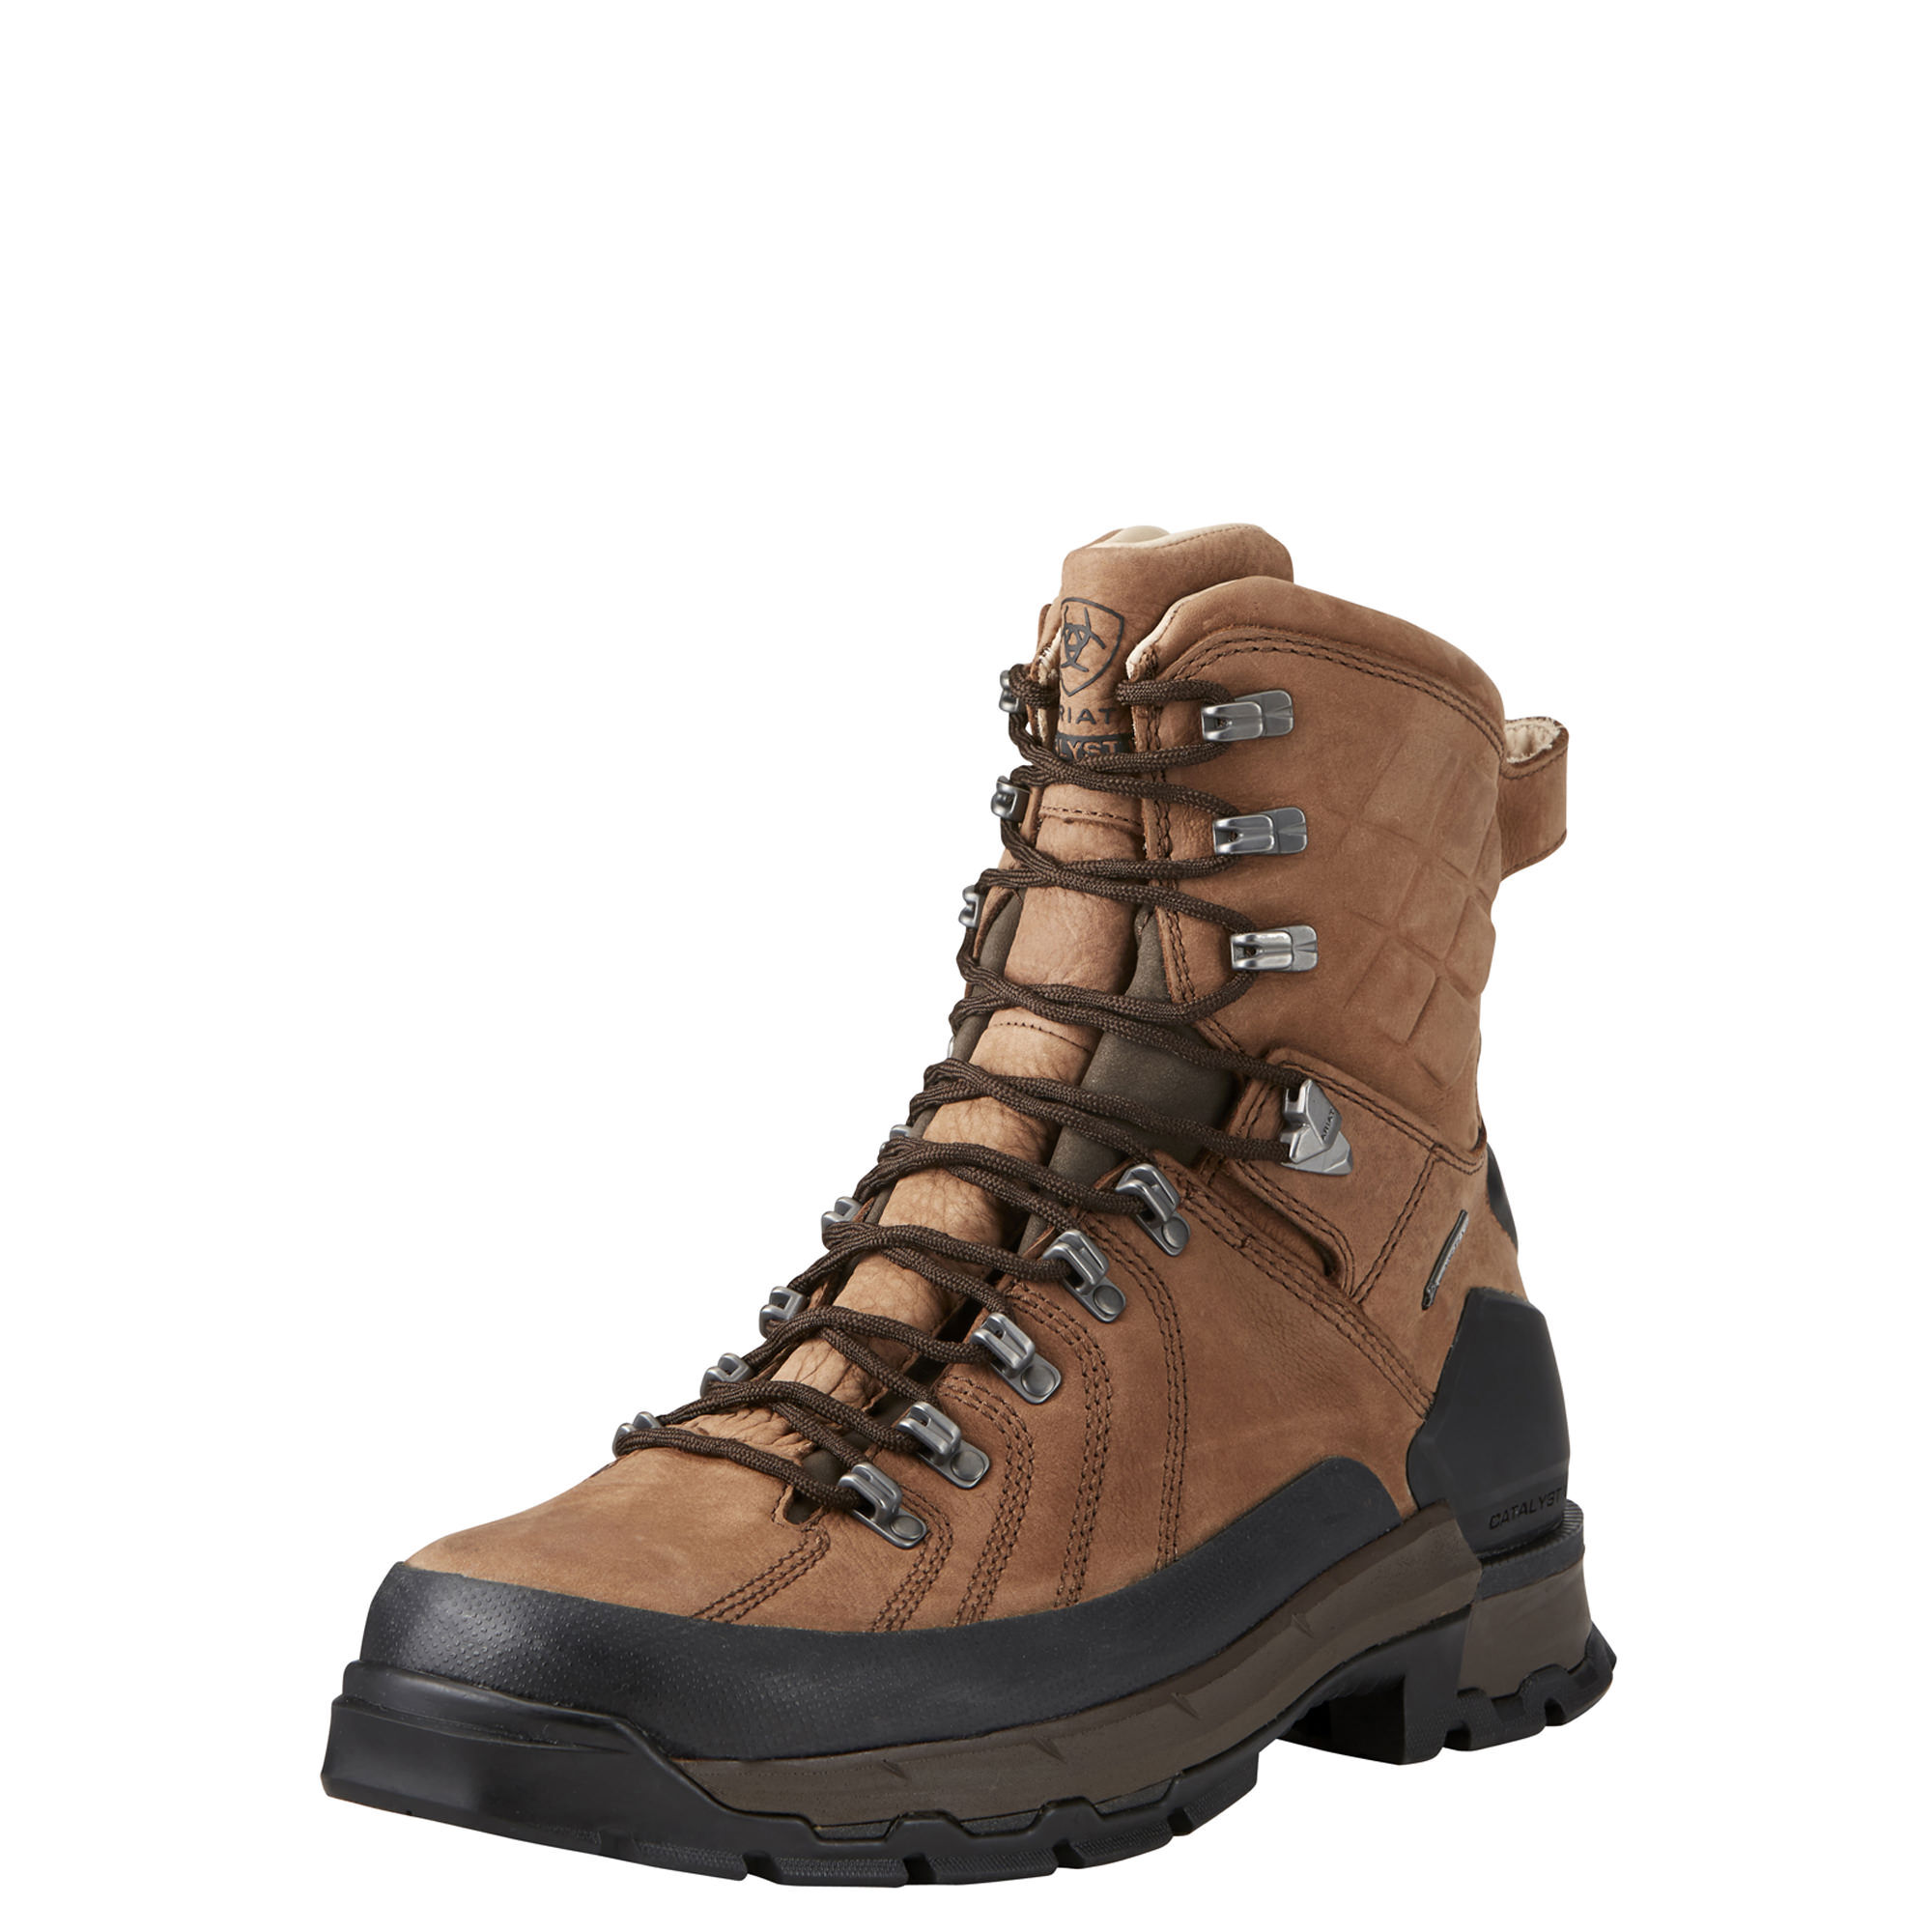 "Catalyst VX Defiant 8"" Gore-Tex Hunting Boot"